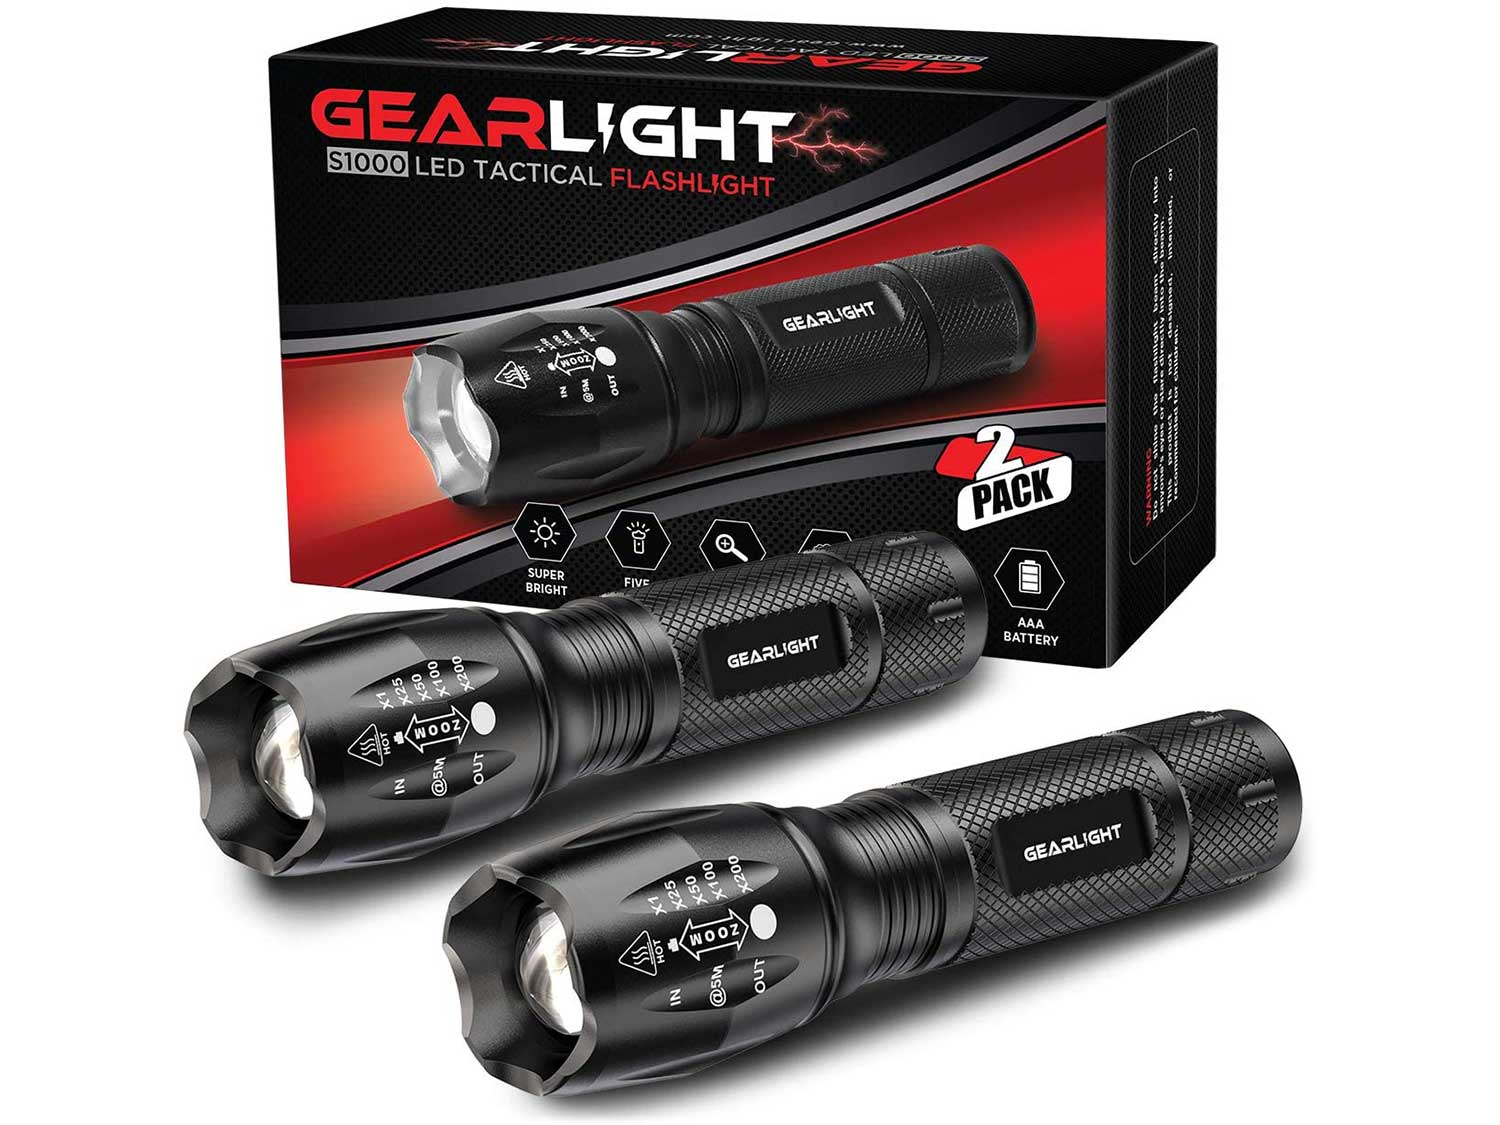 GearLight LED Tactical Flashlight S1000 [2 PACK] - High Lumen, Zoomable, 5 Modes, Water Resistant, Handheld Light - Best Camping, Outdoor, Emergency, Everyday Flashlights